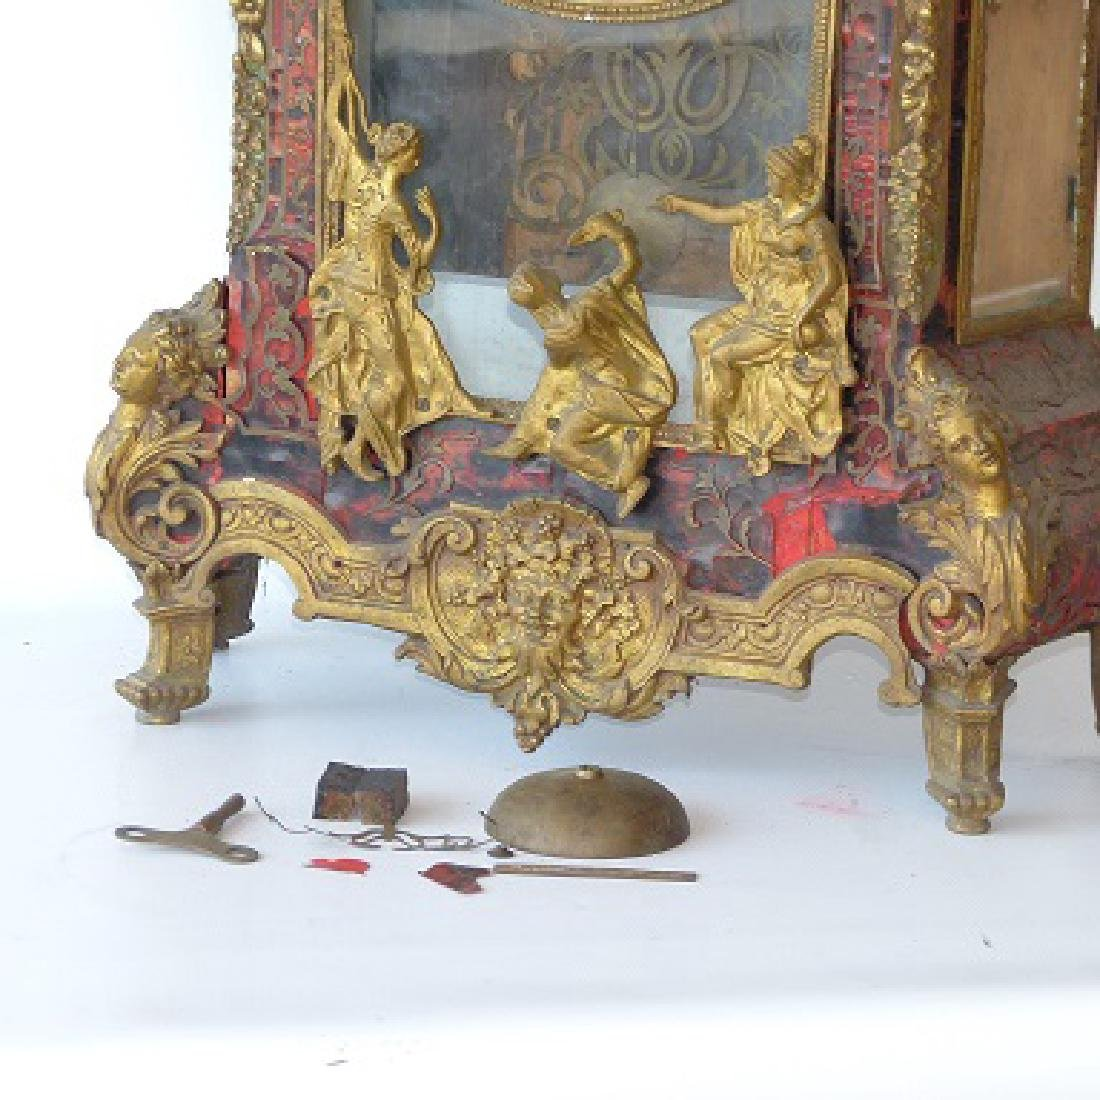 HUGE FRENCH BOULLE MANTLE/SHELF CLOCK 19TH C. - 10